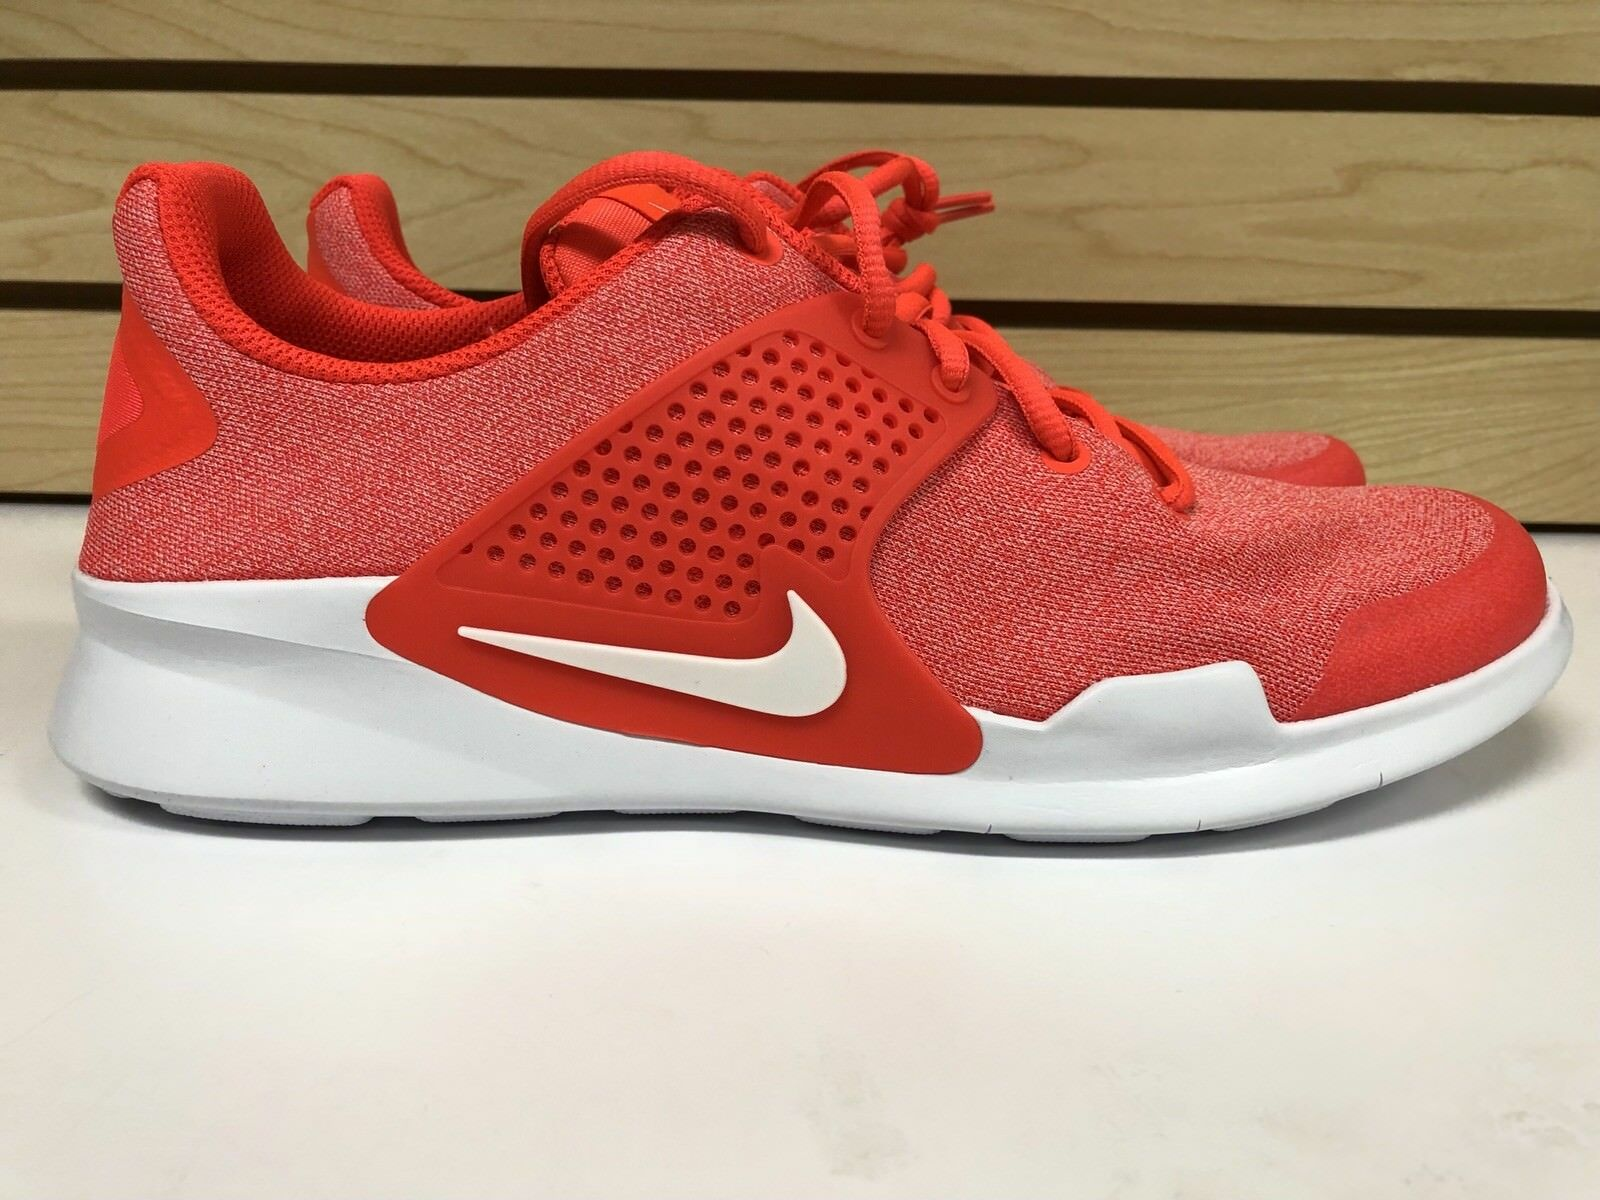 Nike Arrowz Bright Crimson/White Men Running Shoes Sneakers Trainers Size 11